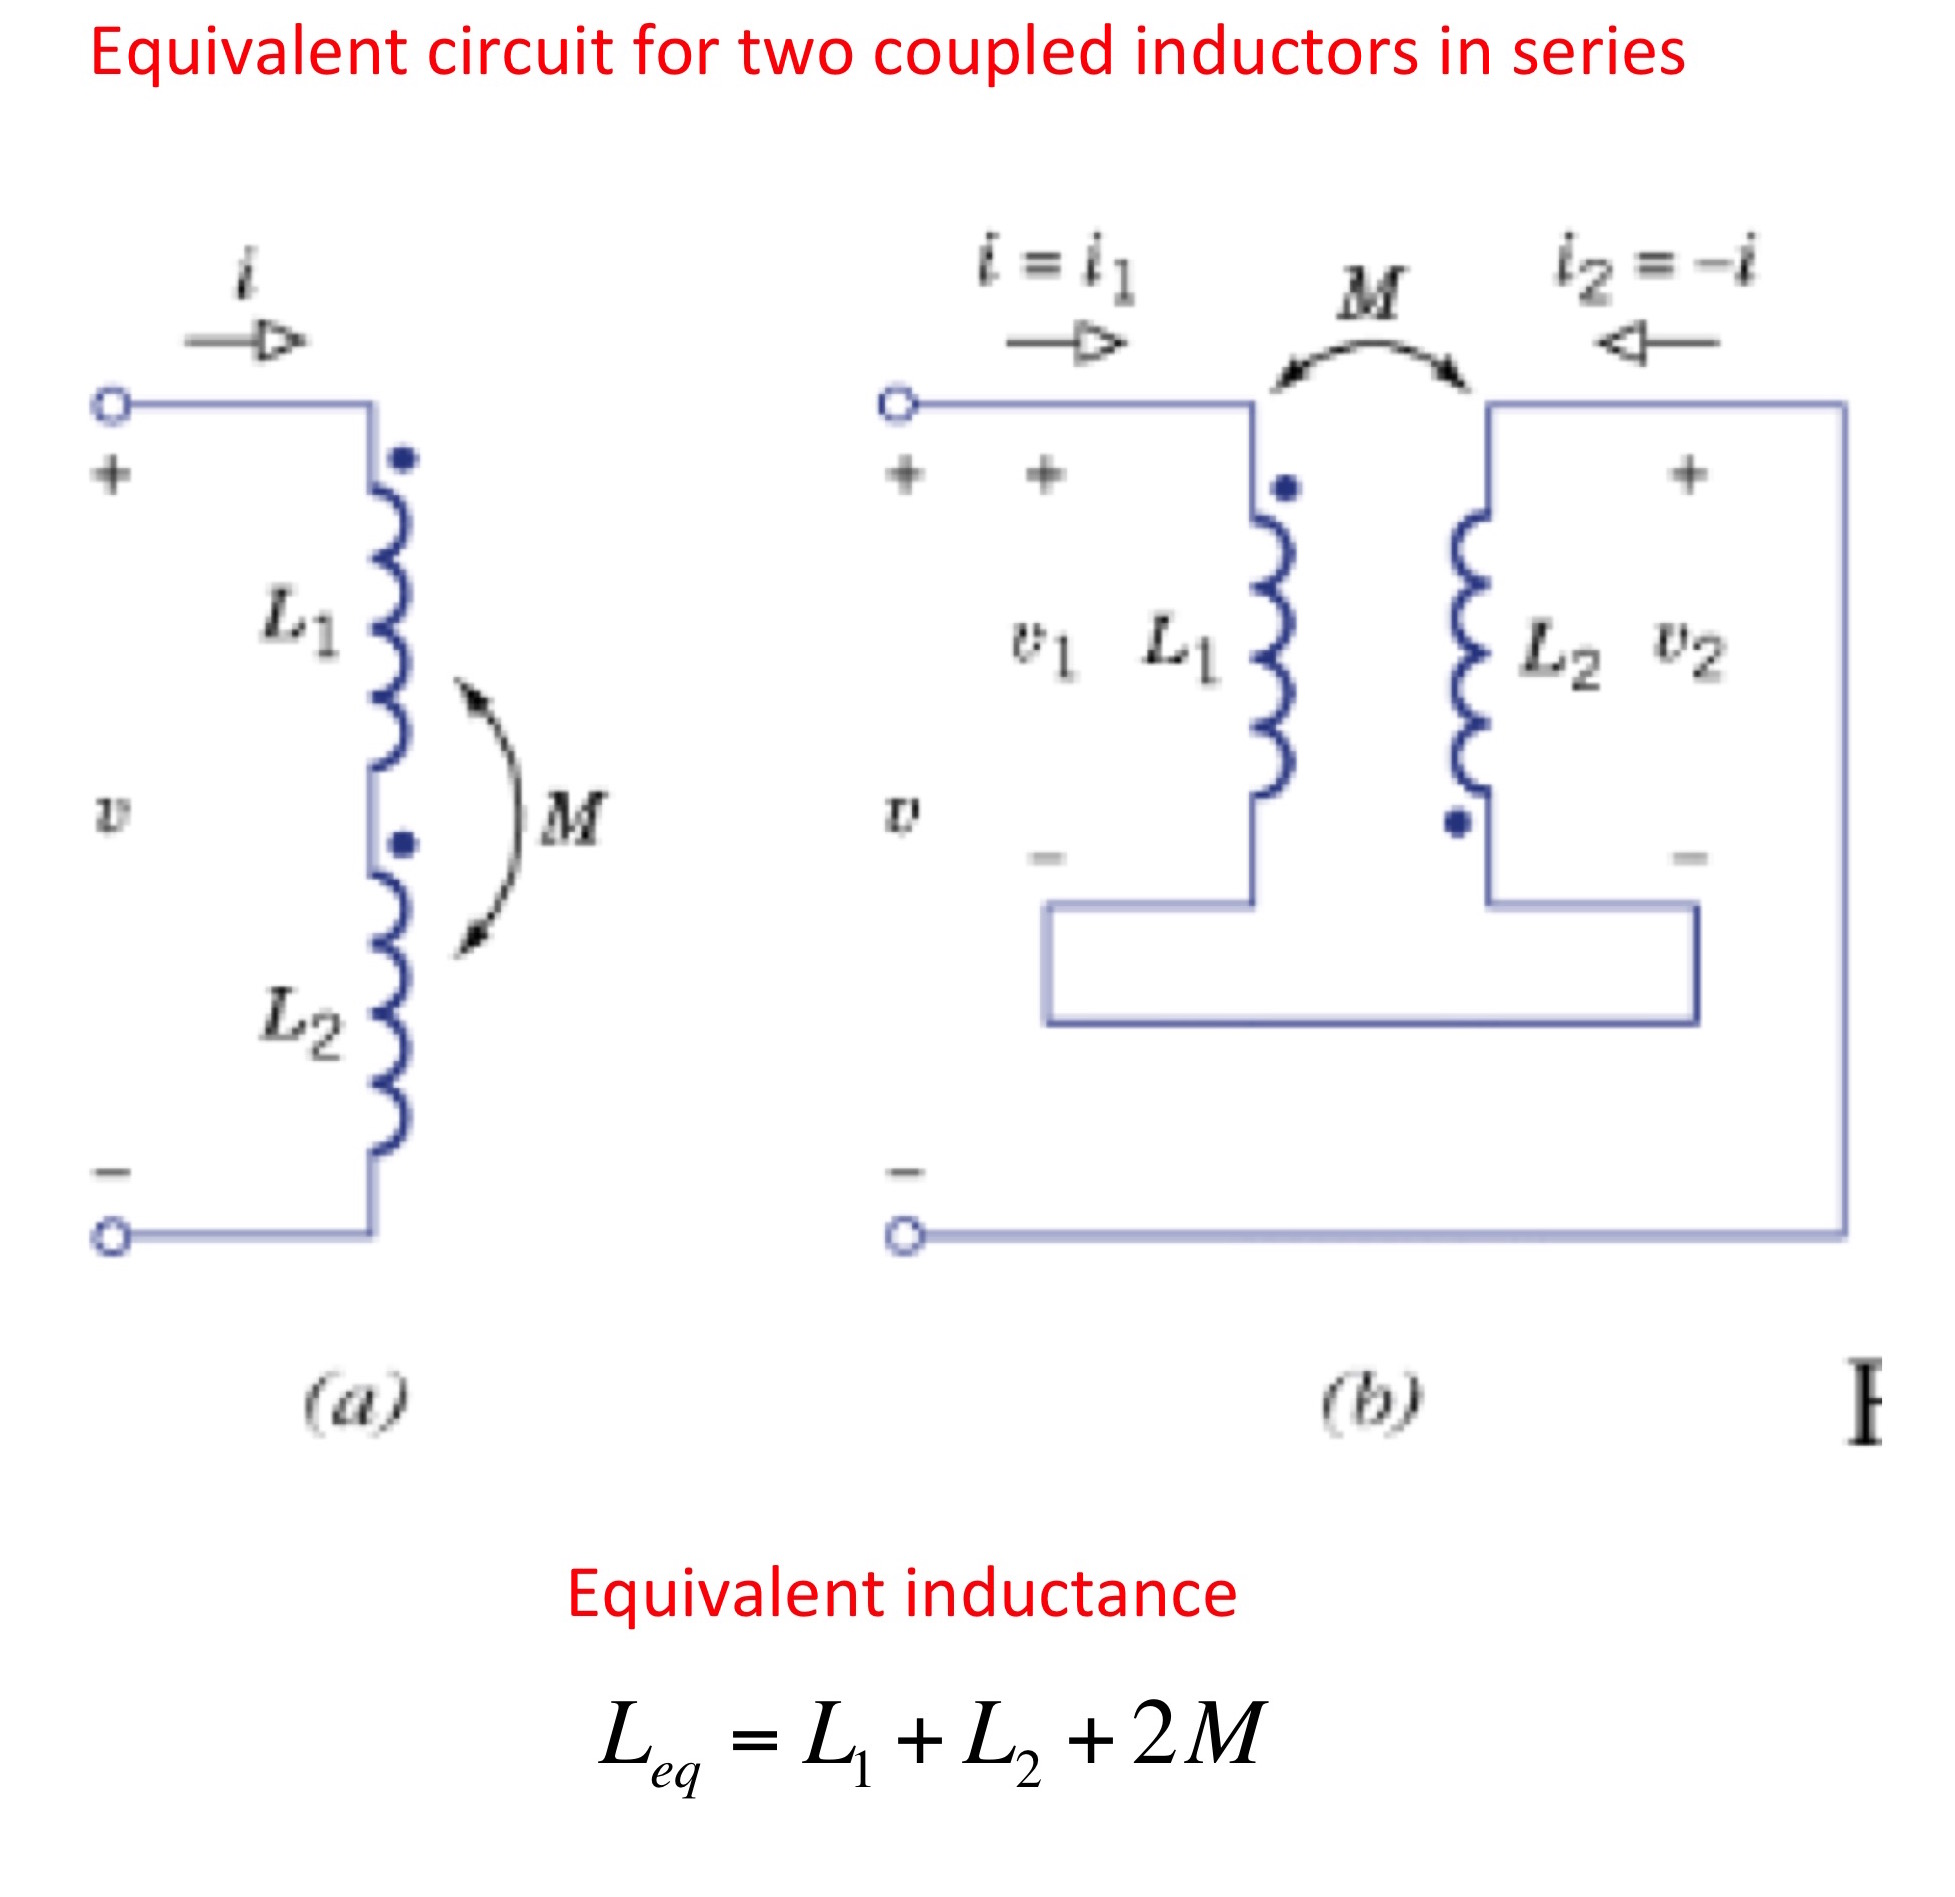 Resonant Coupling Networks Inductor Circuit Diagram Equivalent Of Two Coupled Inductors Connected In Series